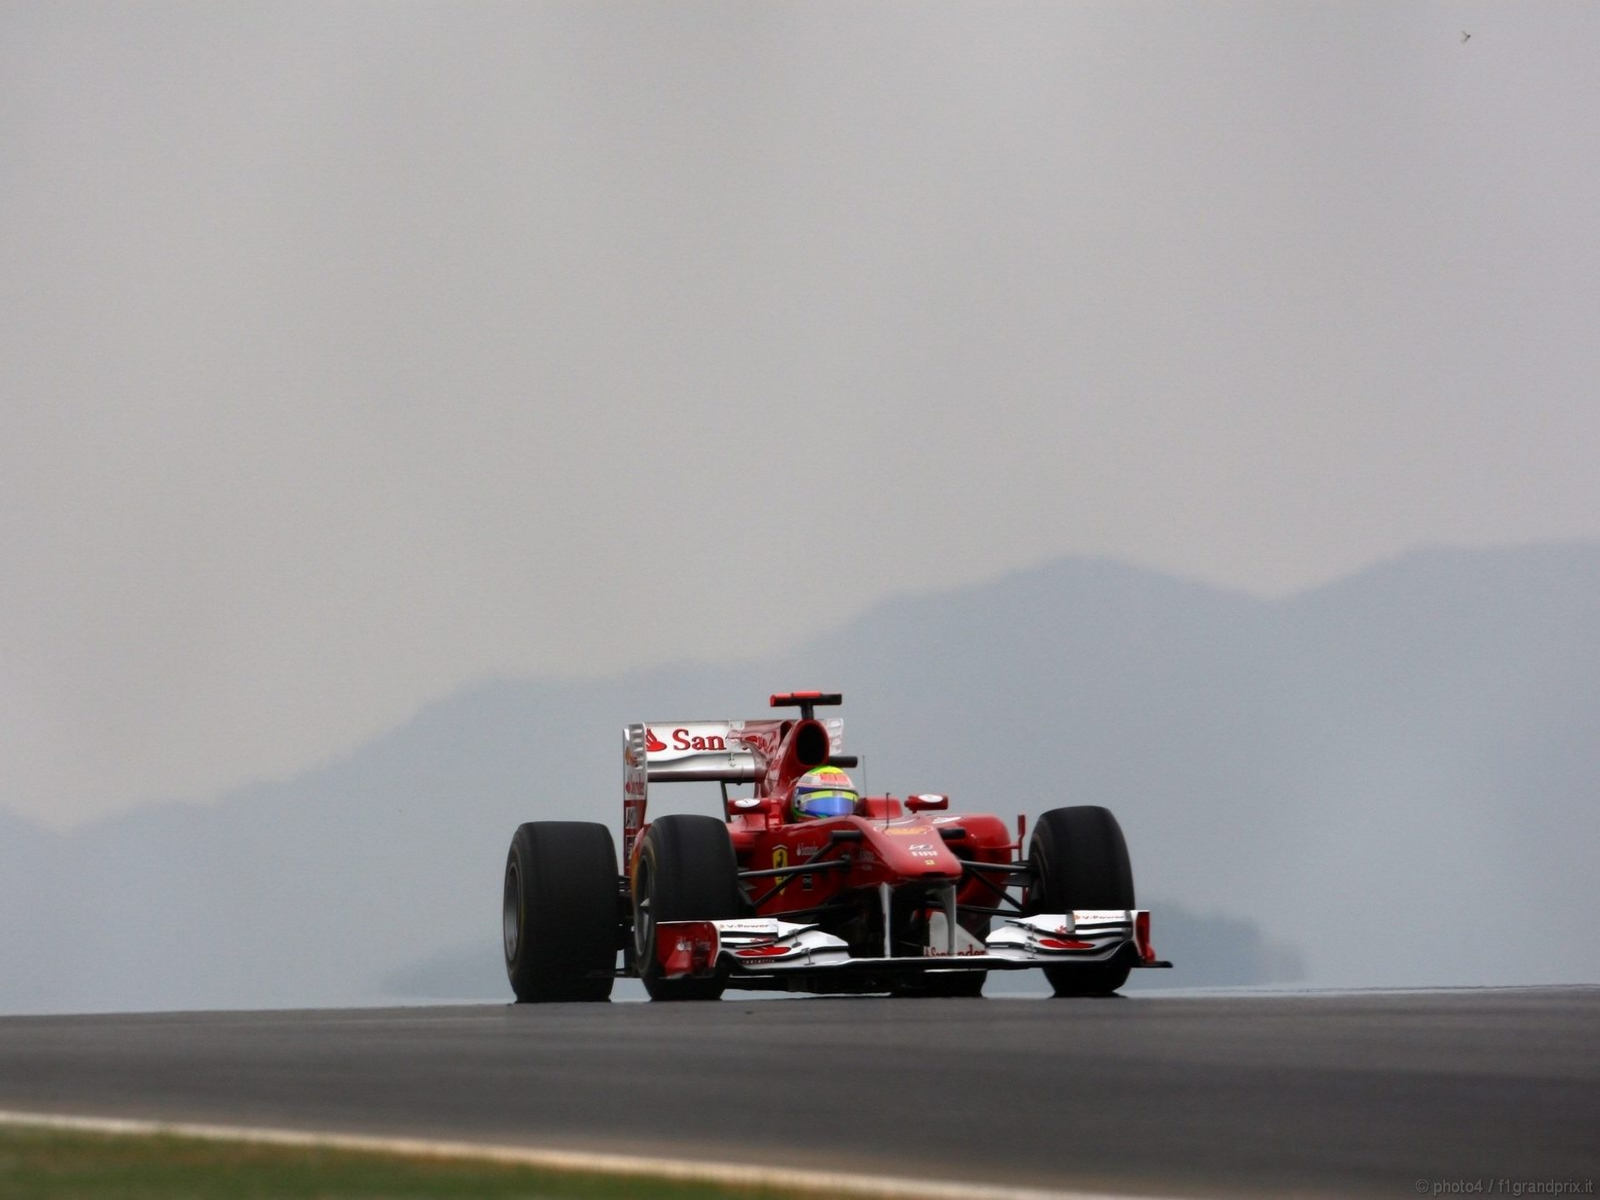 pojazdy - formula1 - gp_corea_wallpapers_000200